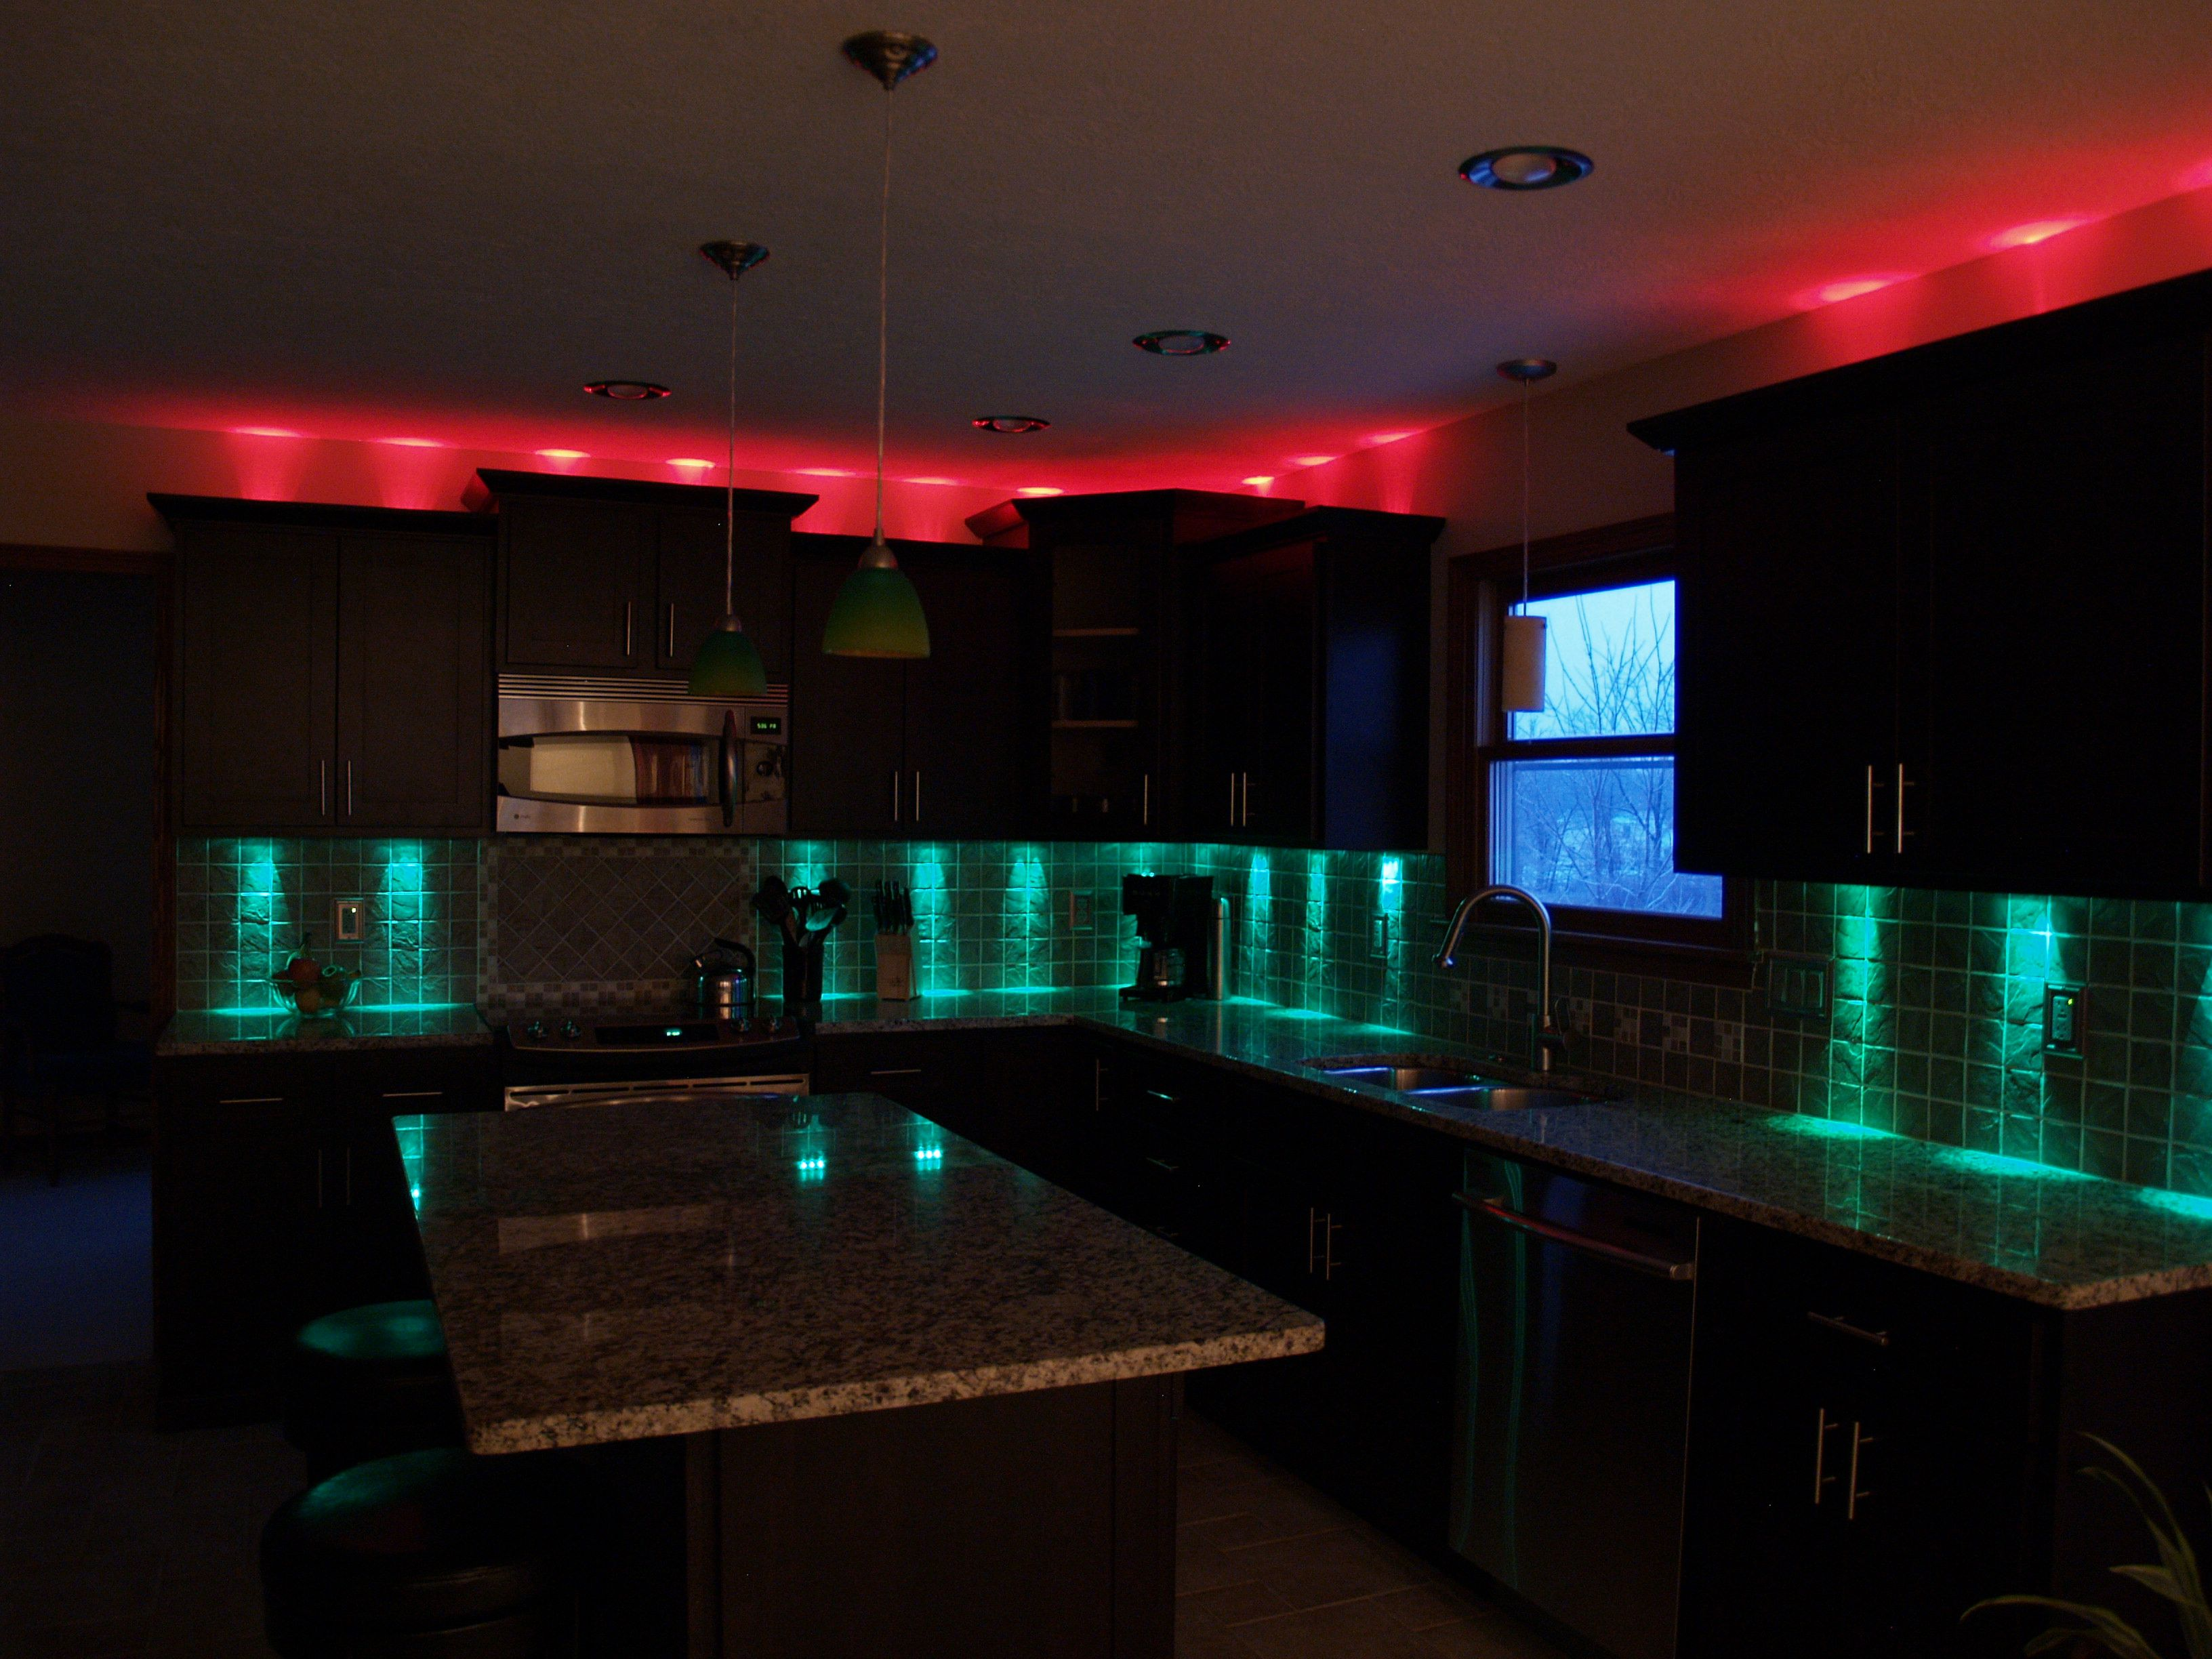 Glow In The Dark Kitchens Kitchen Glow Glowinthedark Dark